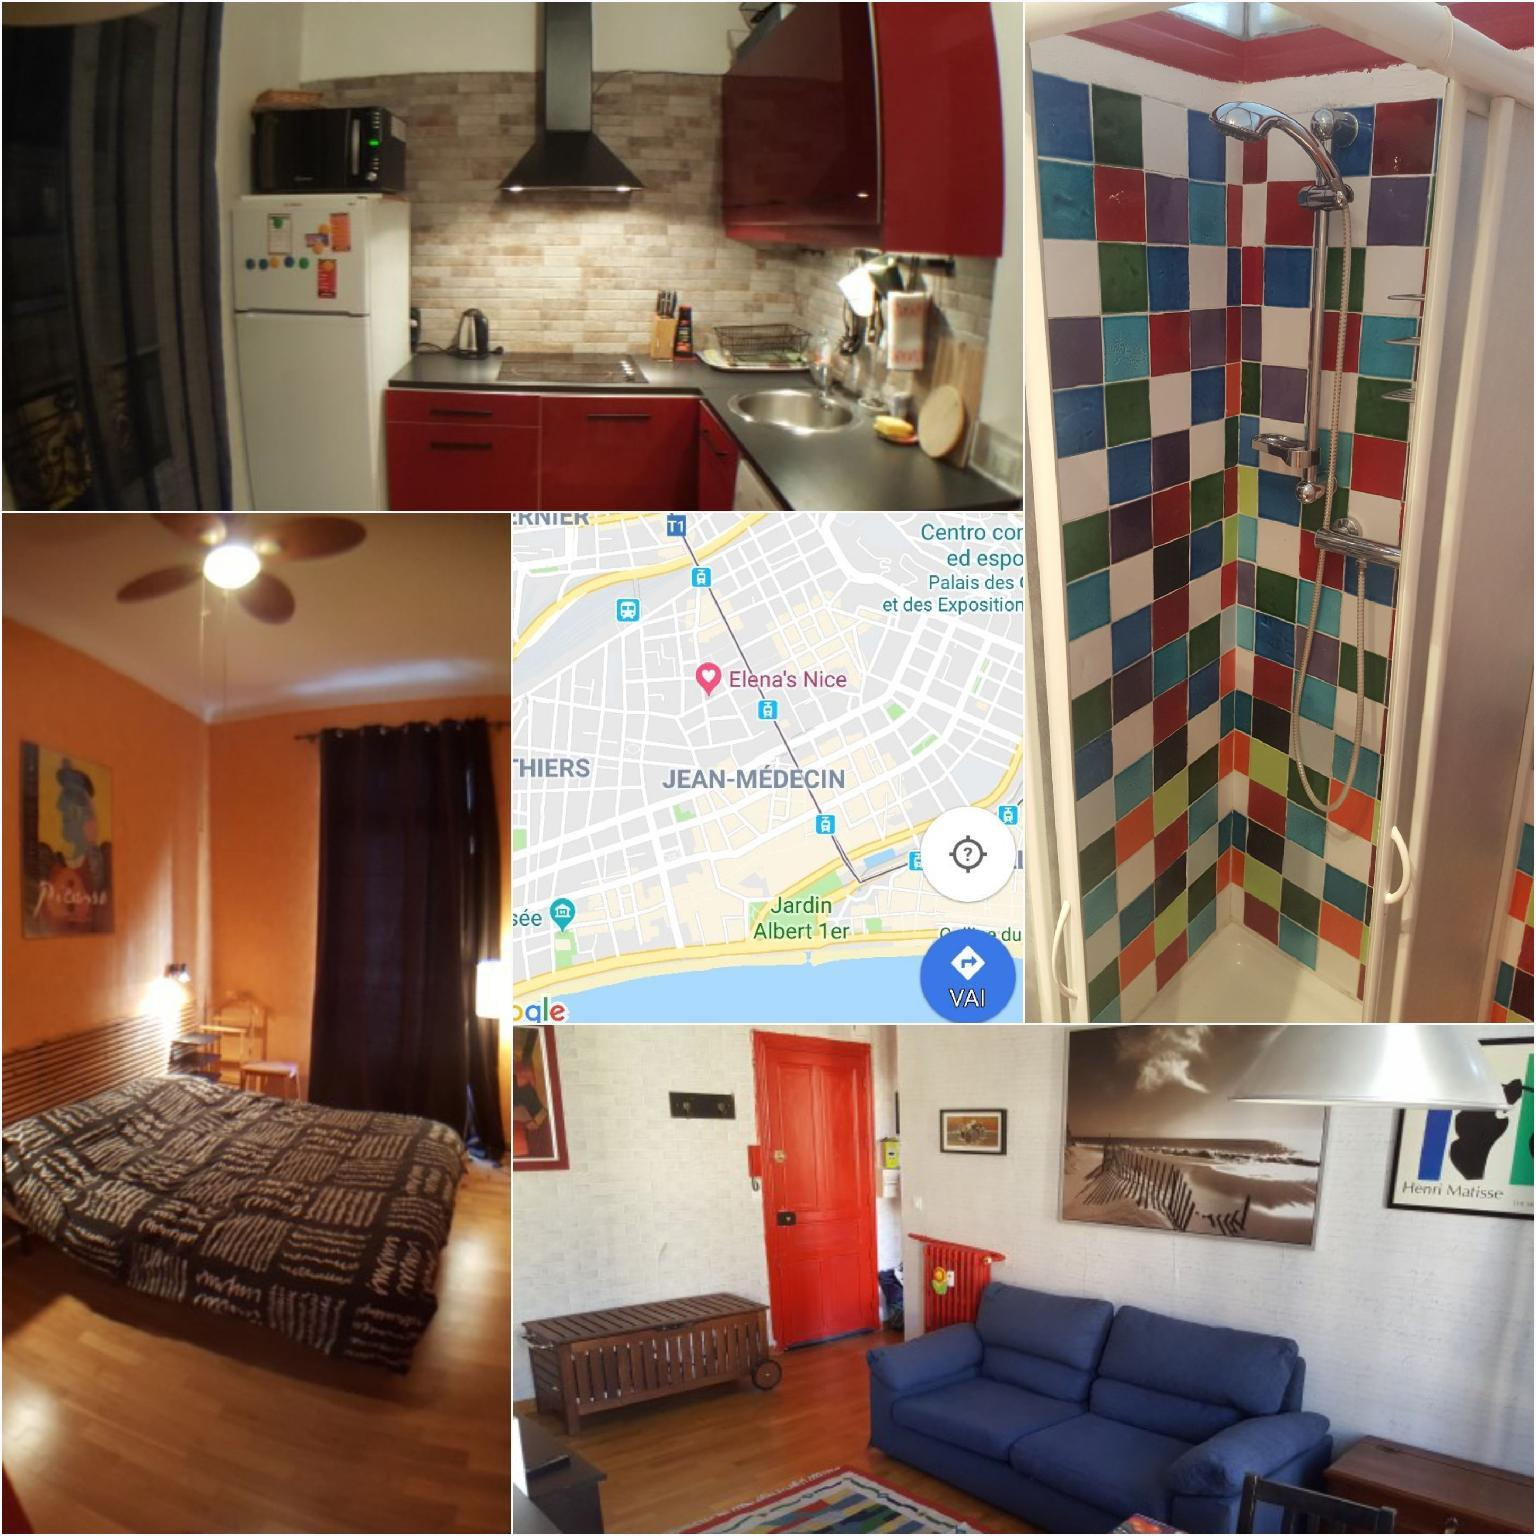 Lovely and colourful apartment right in the center